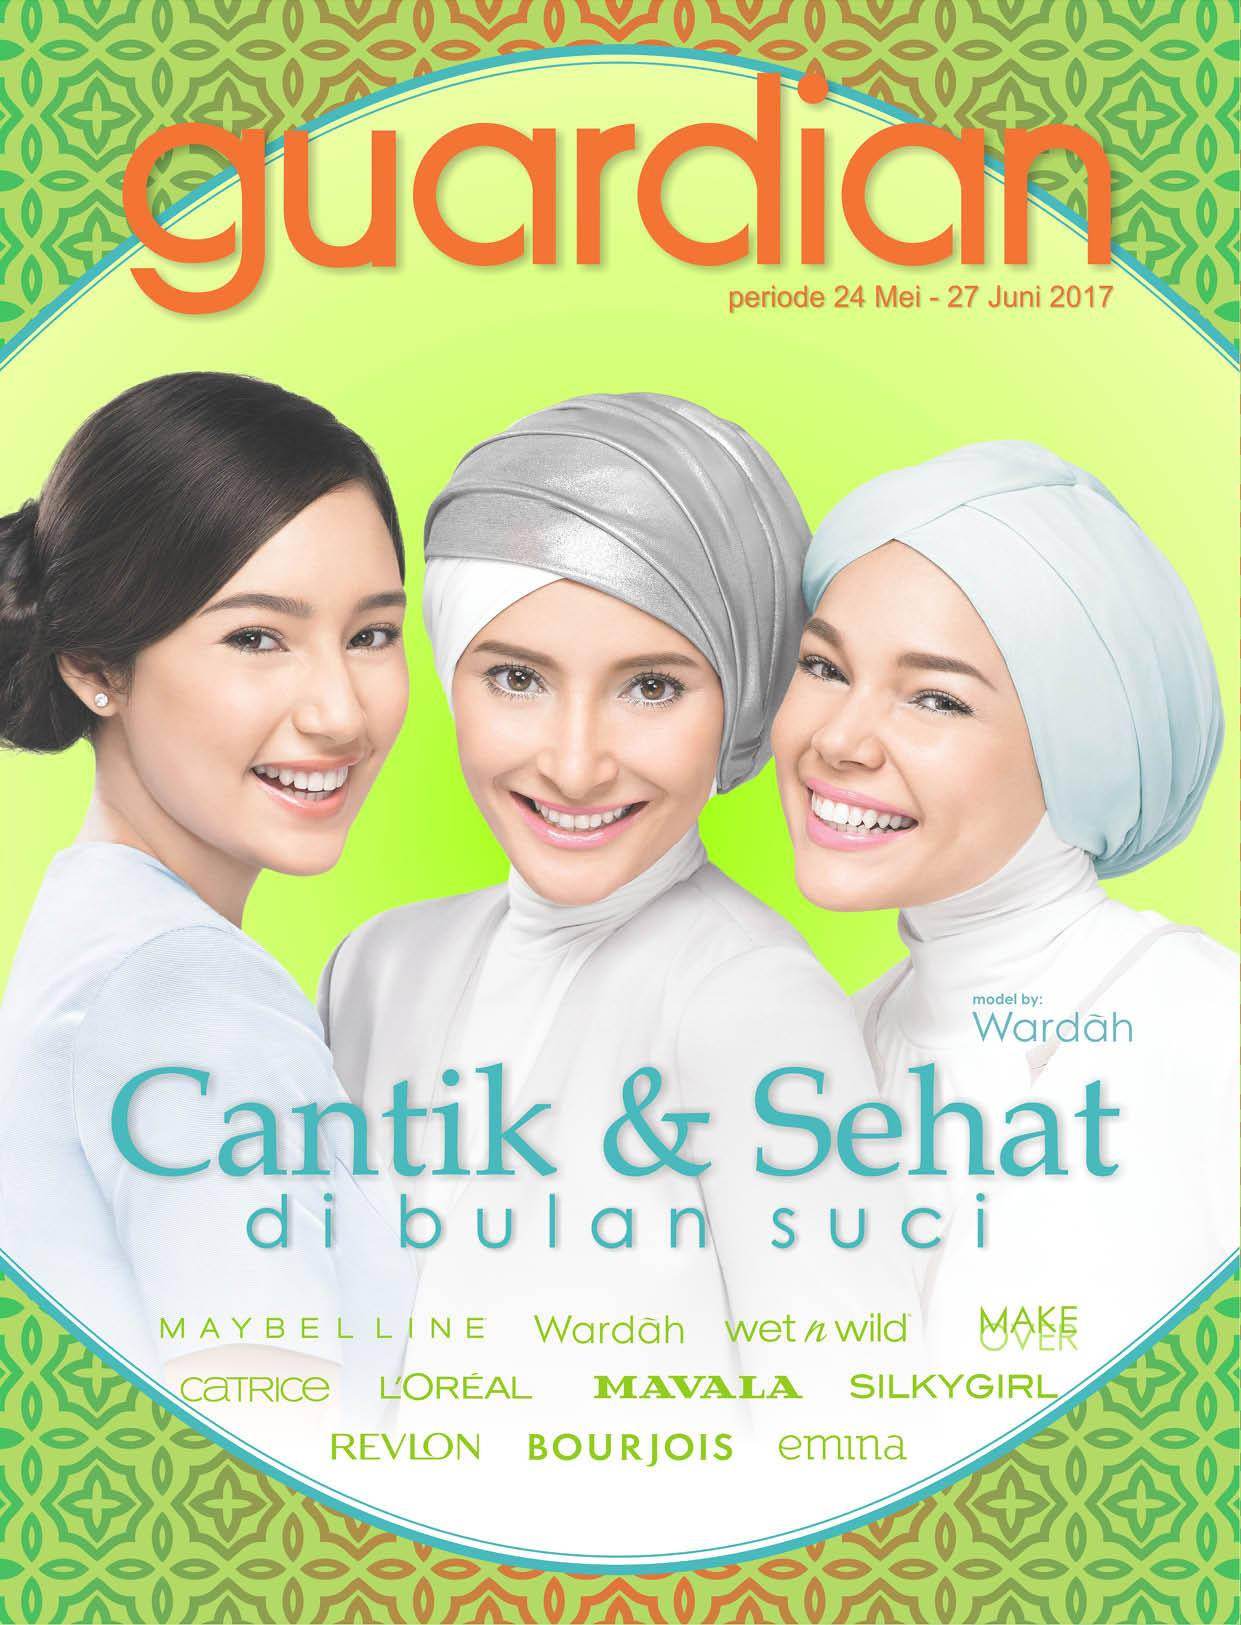 Katalog Guardian 31 May 27 Jun